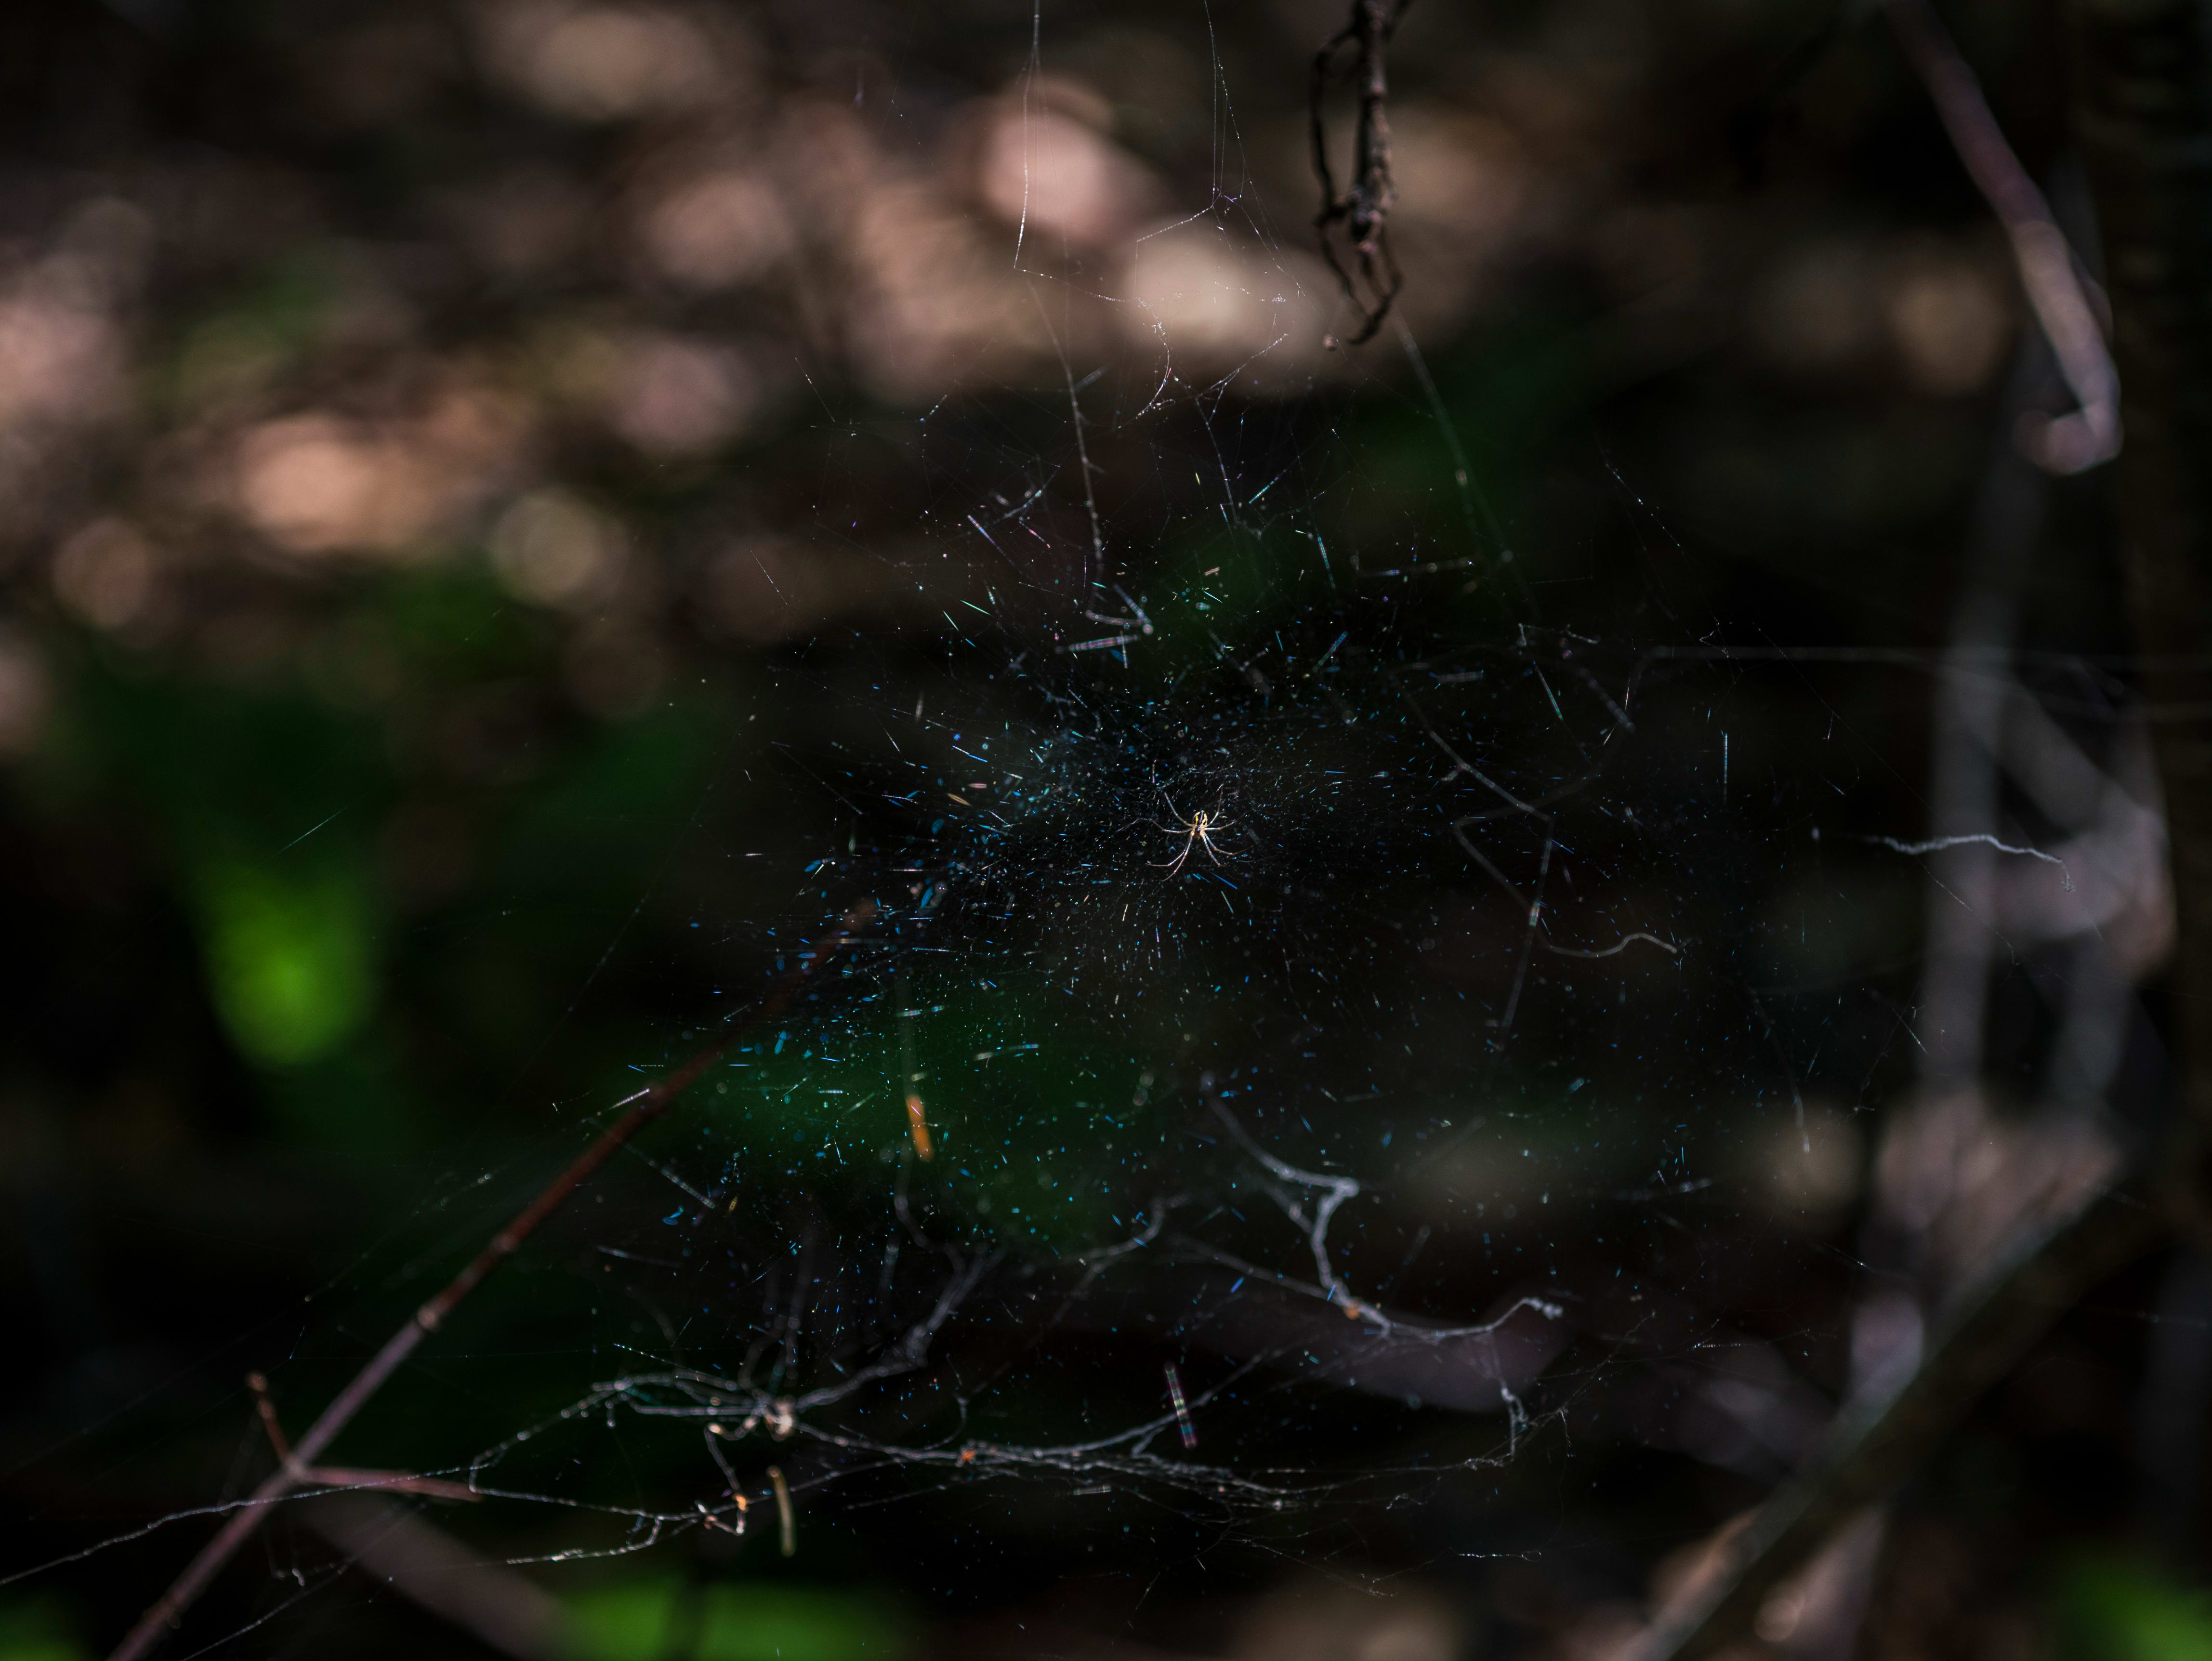 A photo taken by the Panasonic Lumix G7 of a spiderweb.